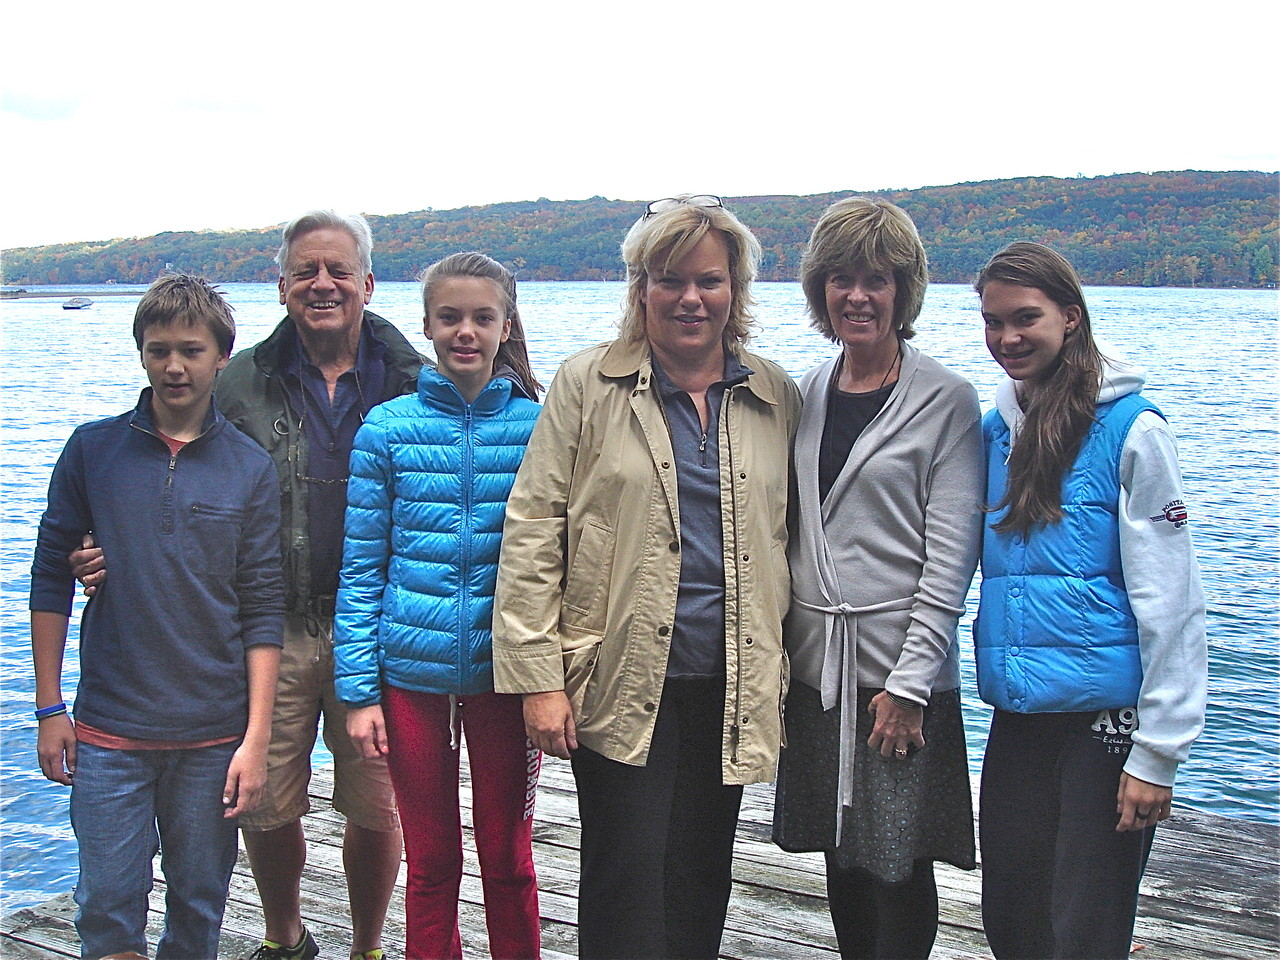 Jack, Stuart, Ellie, Celeste, Nancy, & Ellie  Skaneateles Lake, Oct. 2012